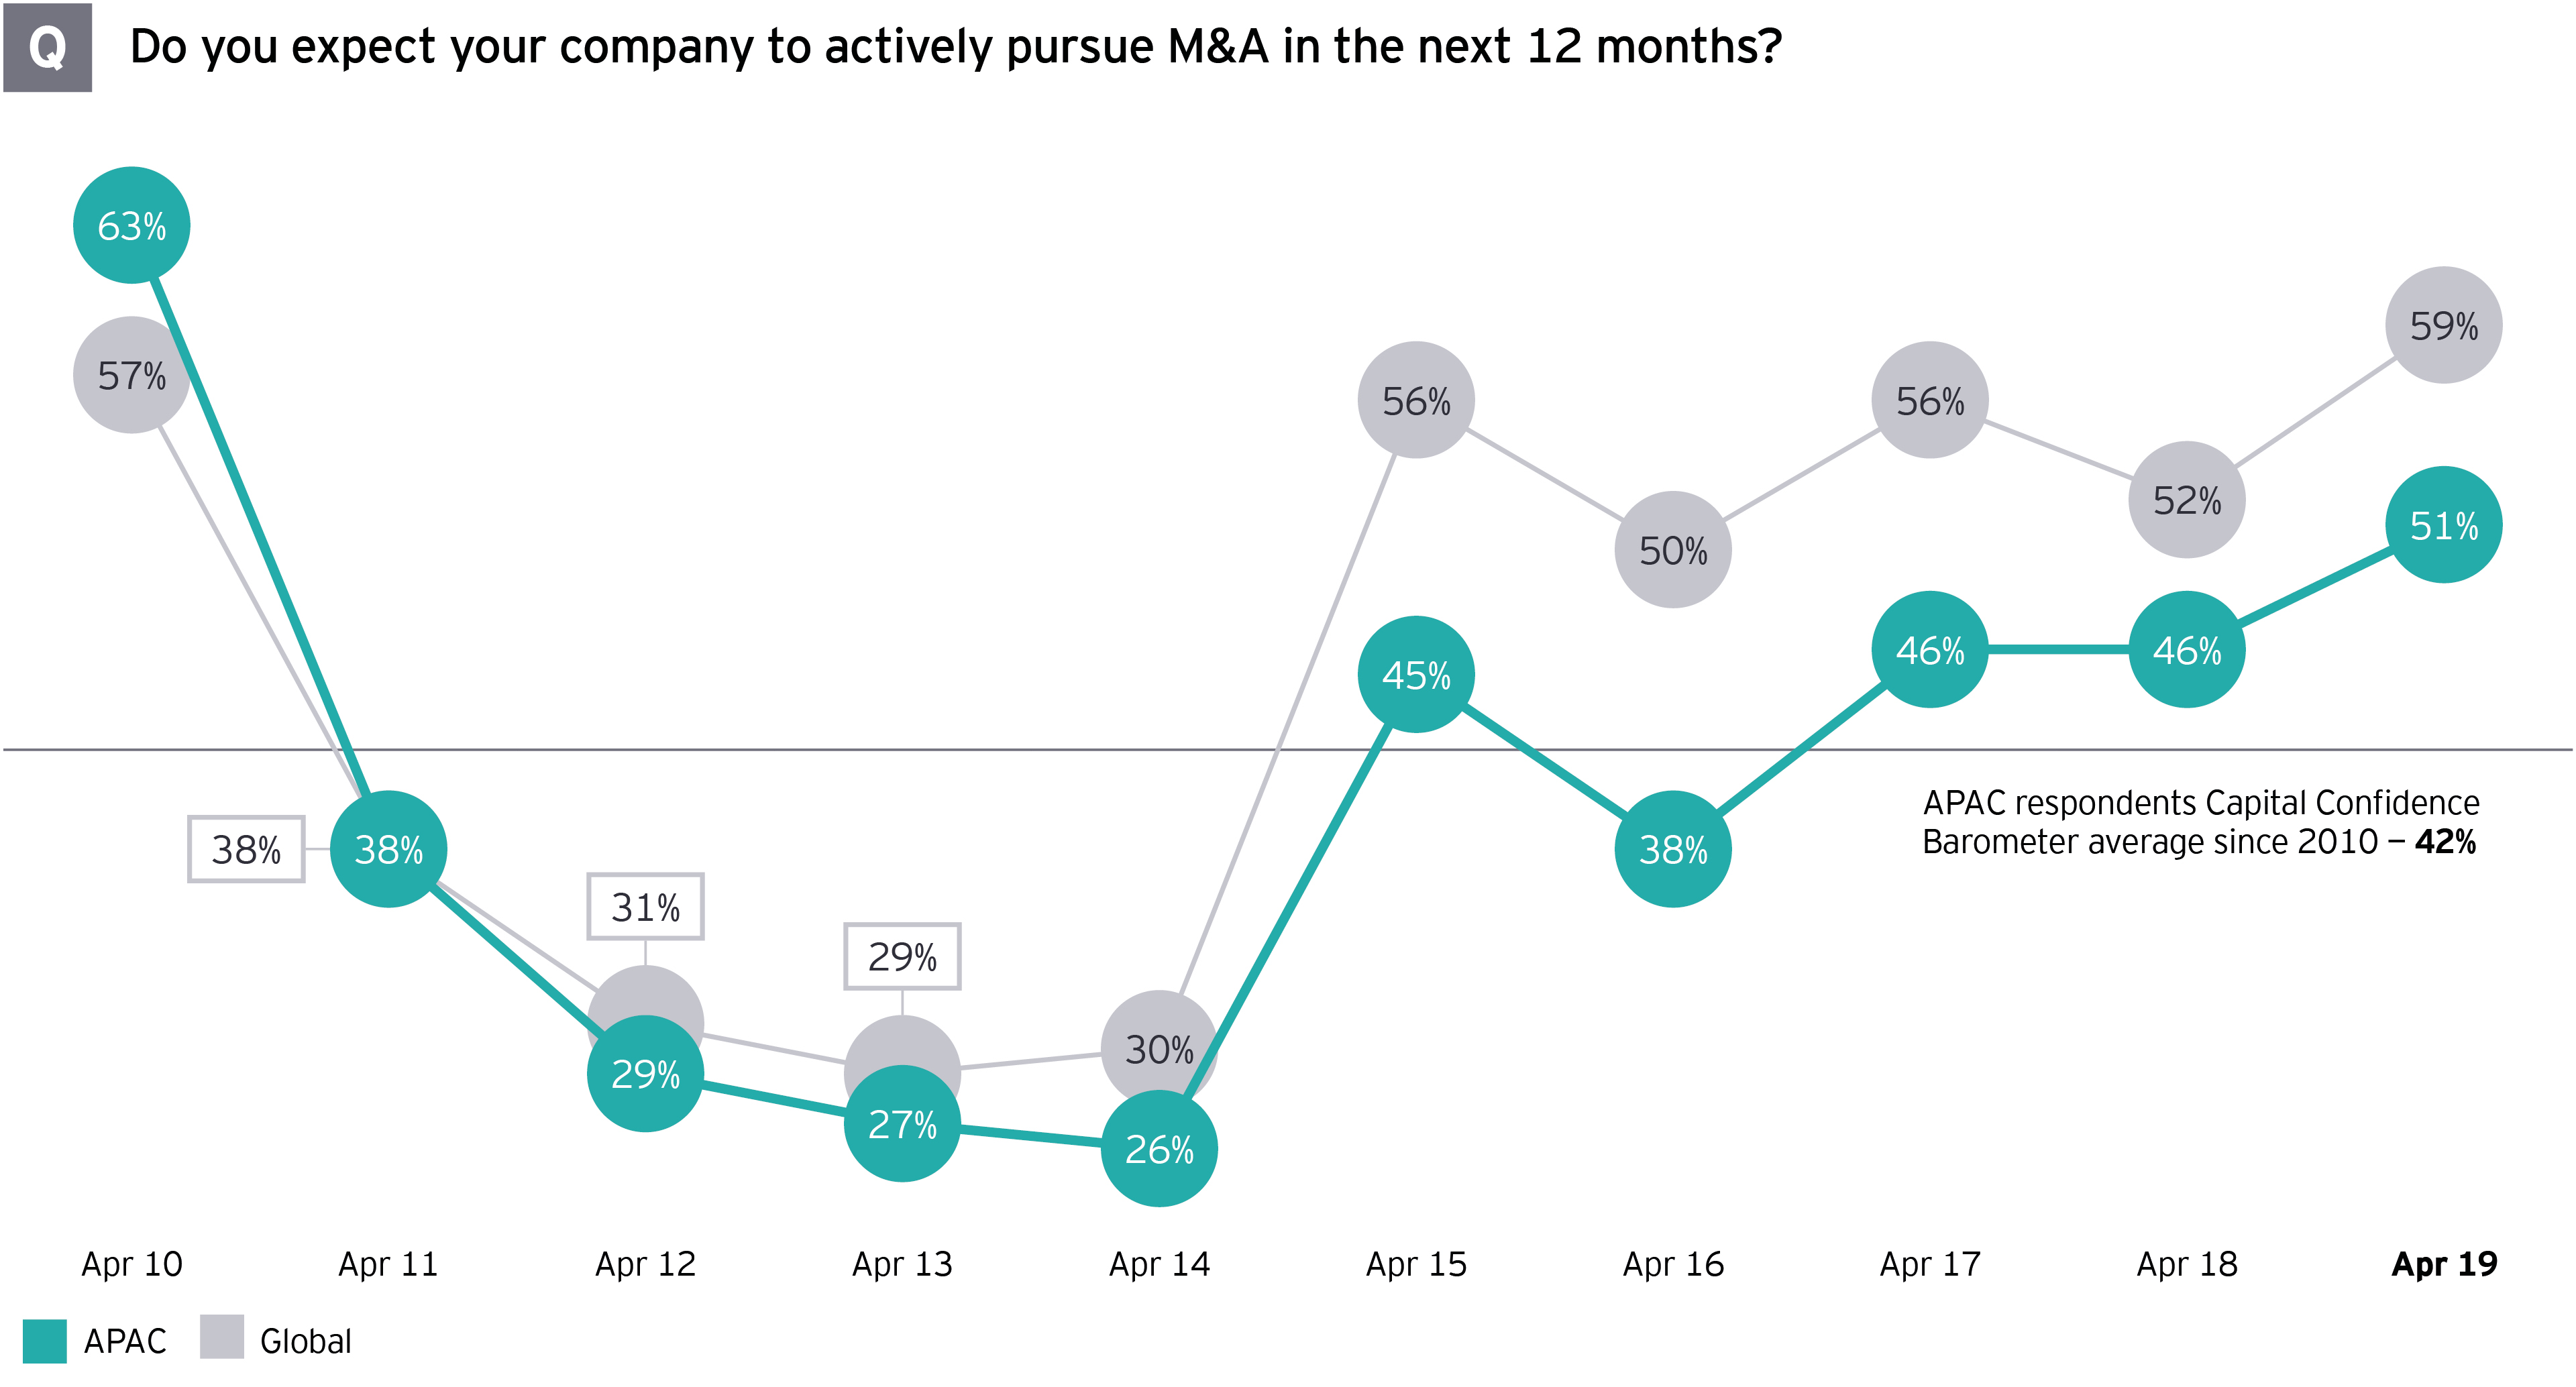 Chart showing responses to question 'Do you expect your company to actively pursue M&A in the next 12 months?'